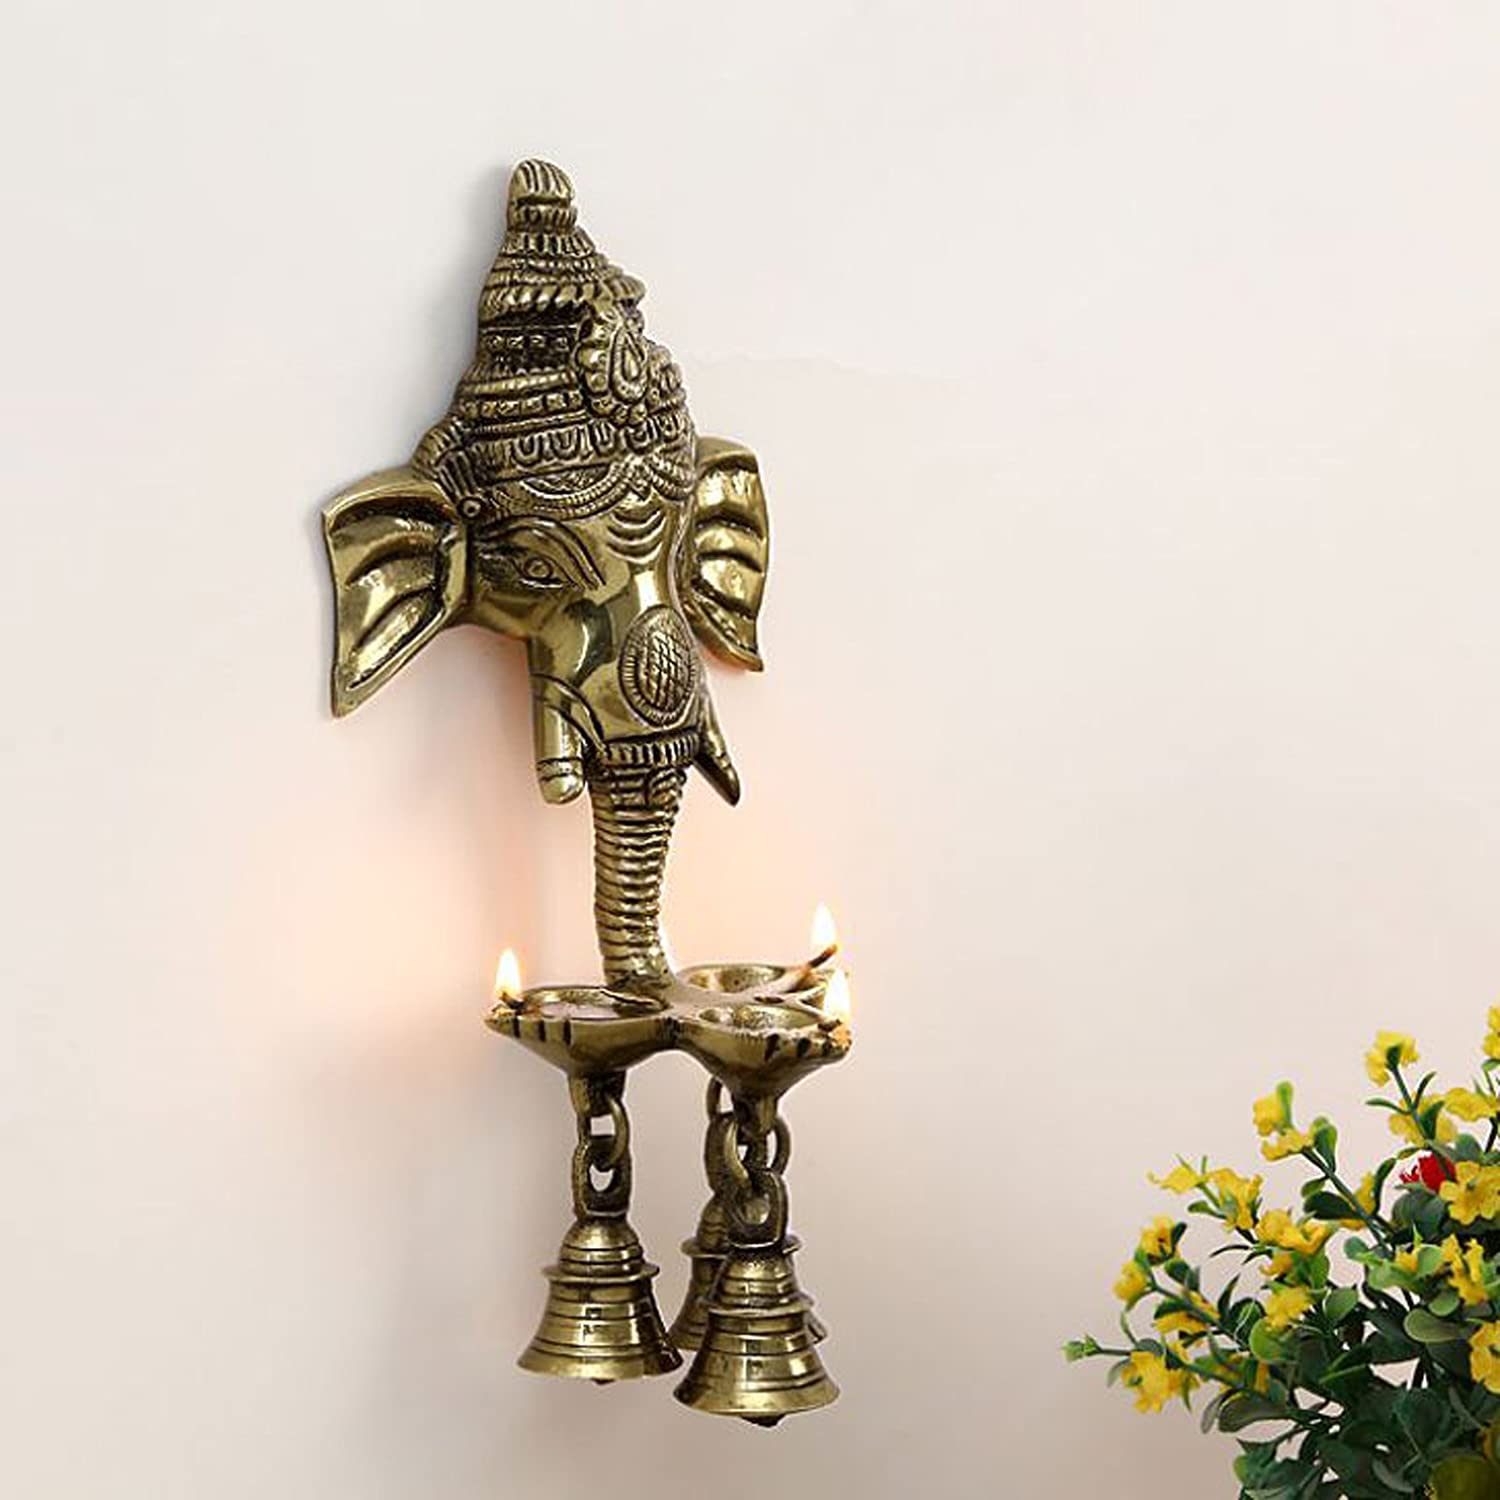 Aakrati Wall Hanging Three Diya Oil Lamp with Small Bells